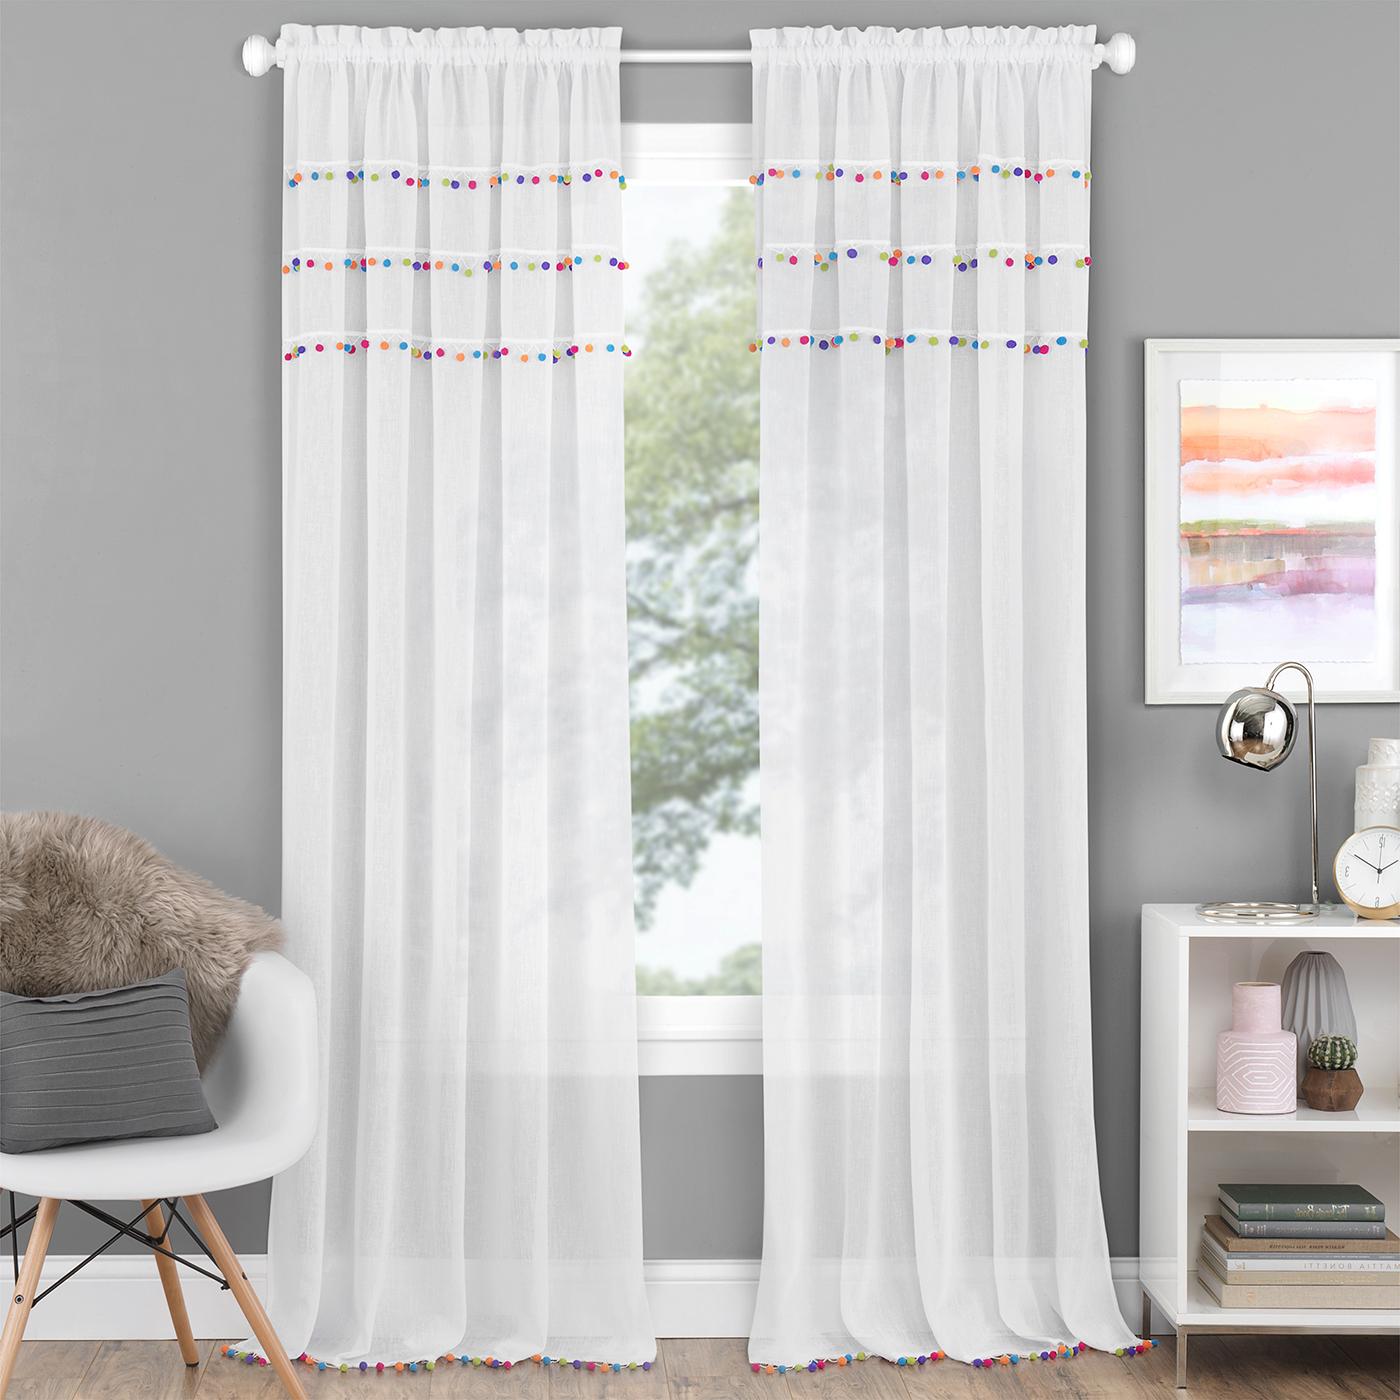 Widely Used Willow Rod Pocket Window Curtain Panels Intended For Details About Achim Home Furnishing: Pom Pom Bright Semi Sheer Window Curtain Rod Pocket Panel (View 14 of 20)